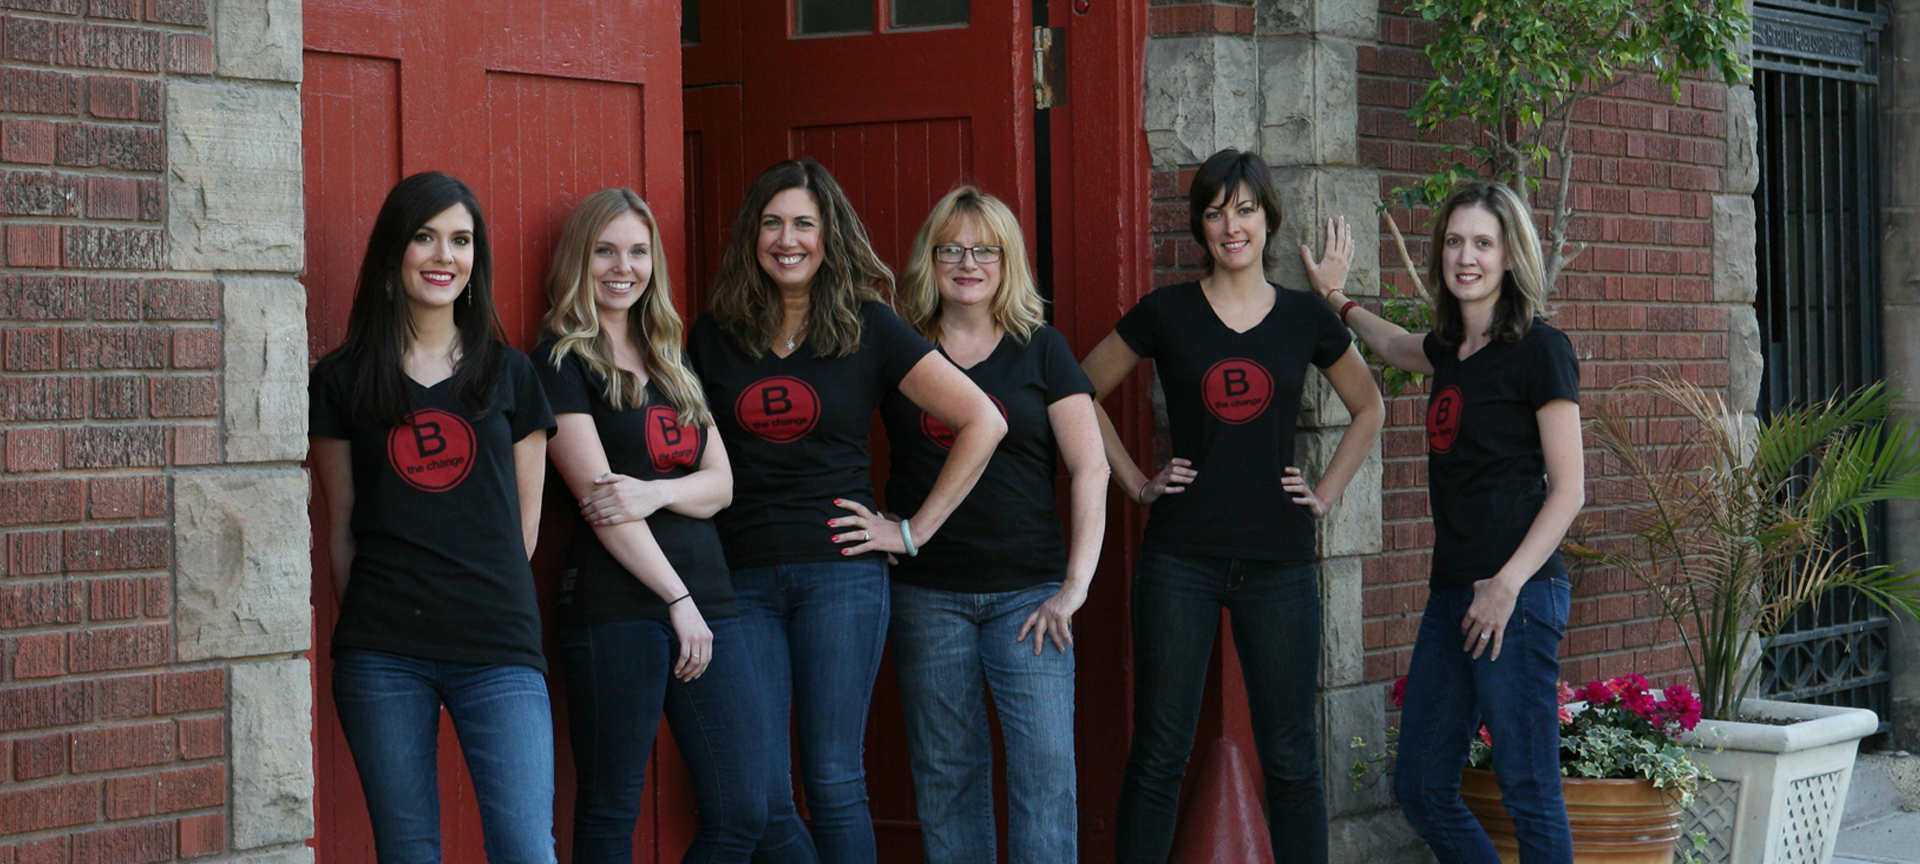 Six women in black shirts and jeans standing in front of a brick building